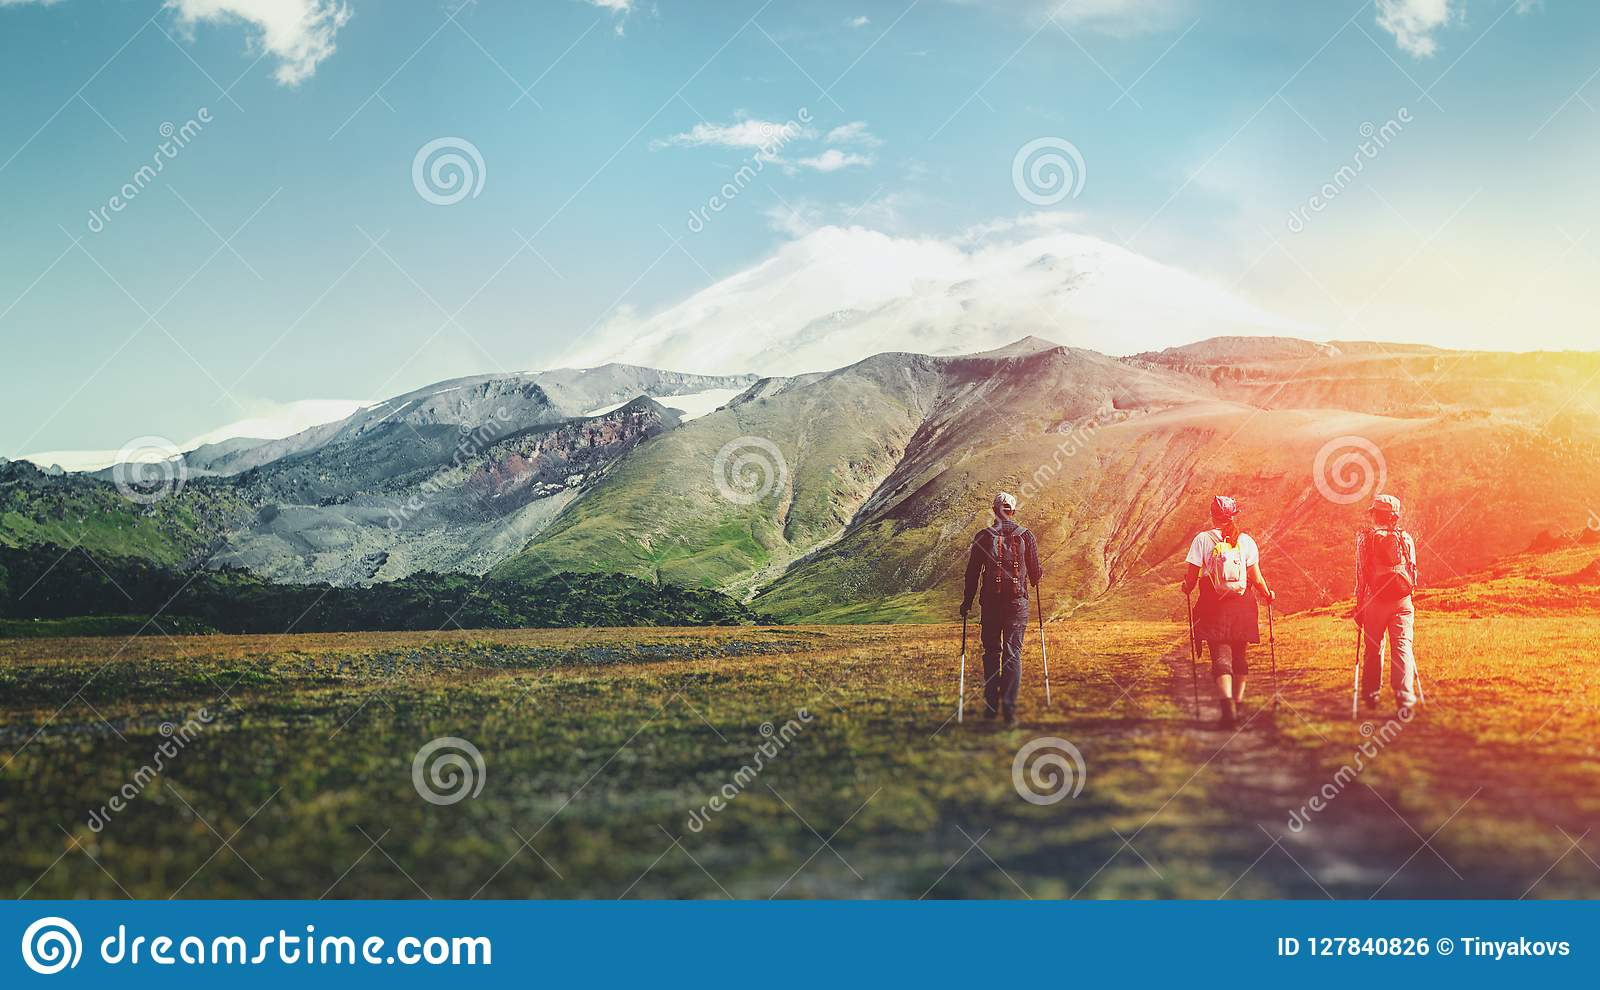 Travel Destination Experience Lifestyle Concept concept. Team of travelers with backpacks and trekking sticks climbs the mountain